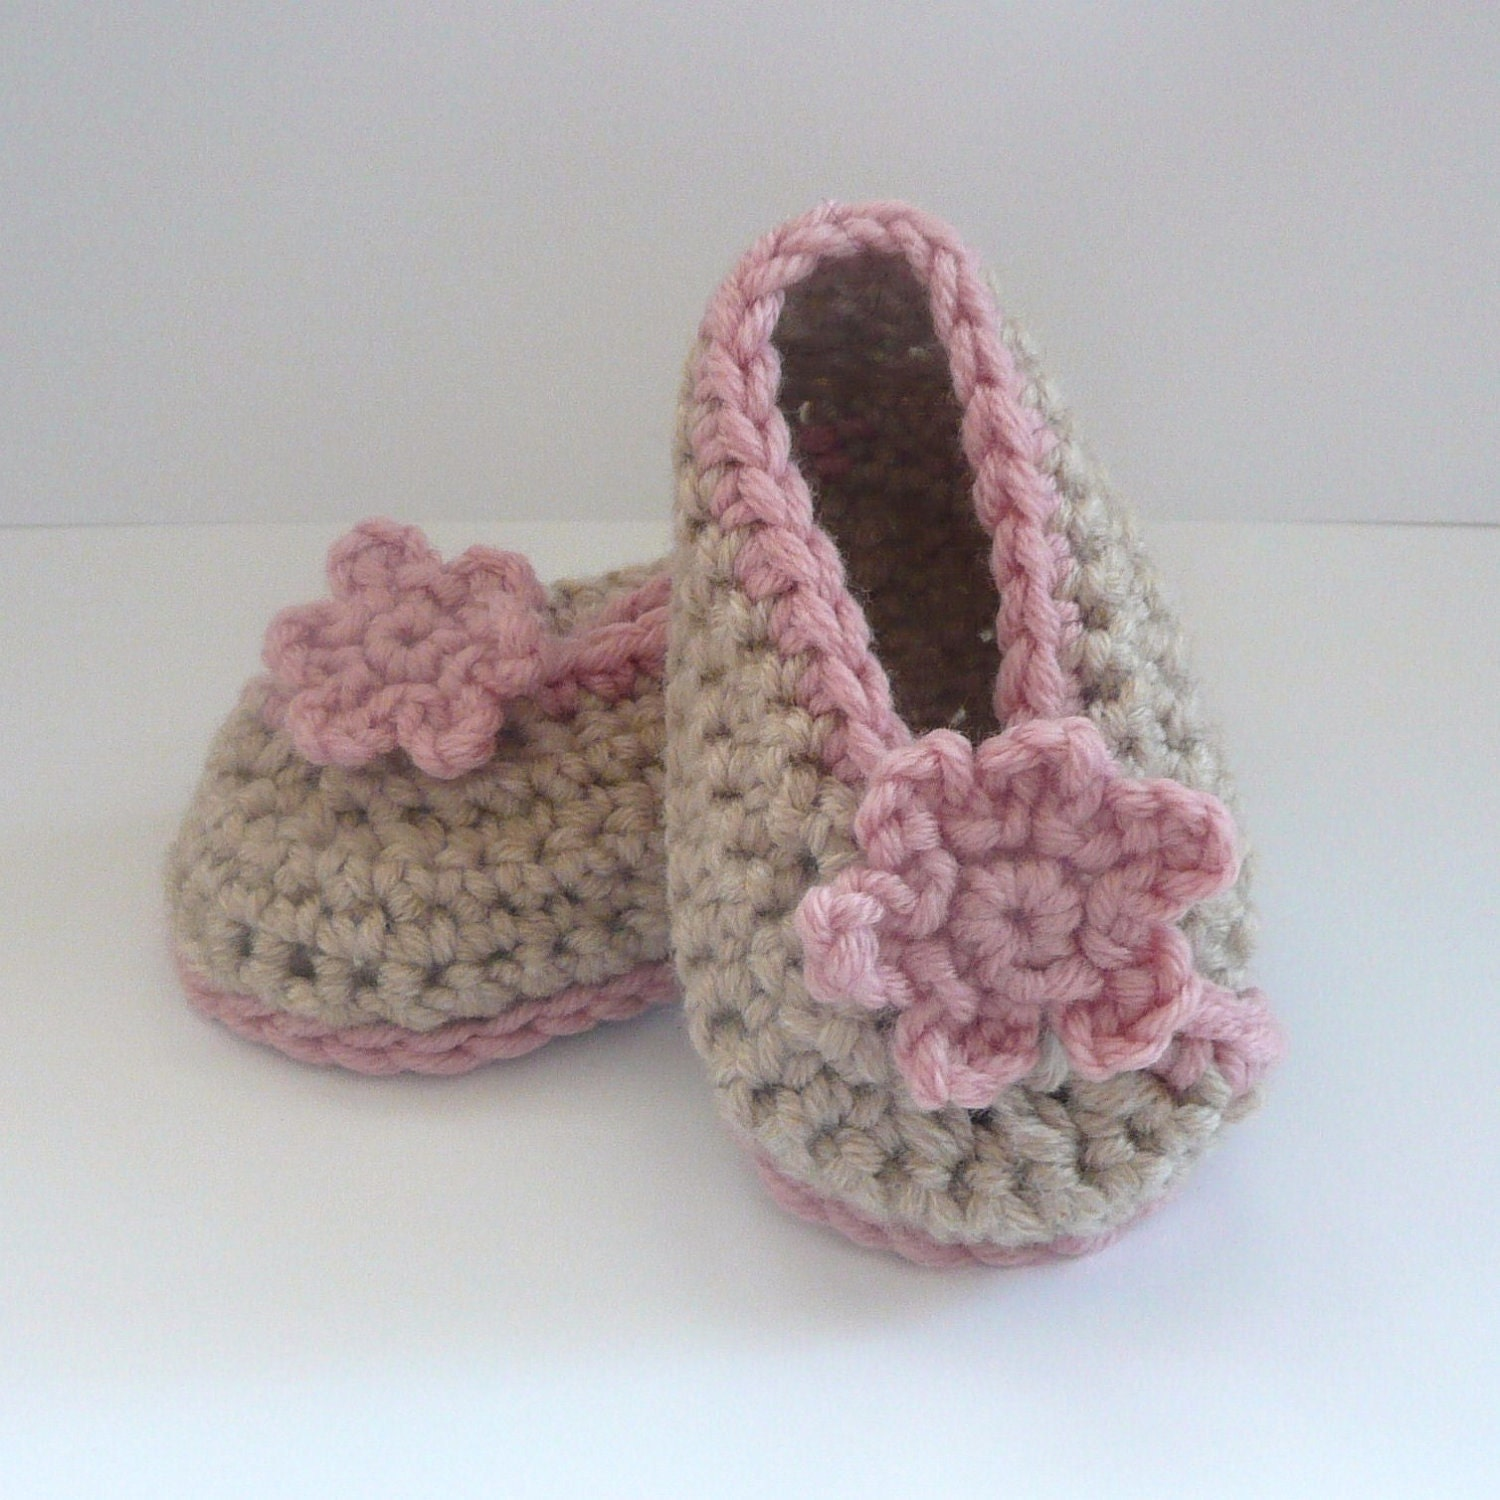 Crochet Shoes : Crochet PATTERN Baby Booties Crossover BABY SHOES by Keen2Crochet